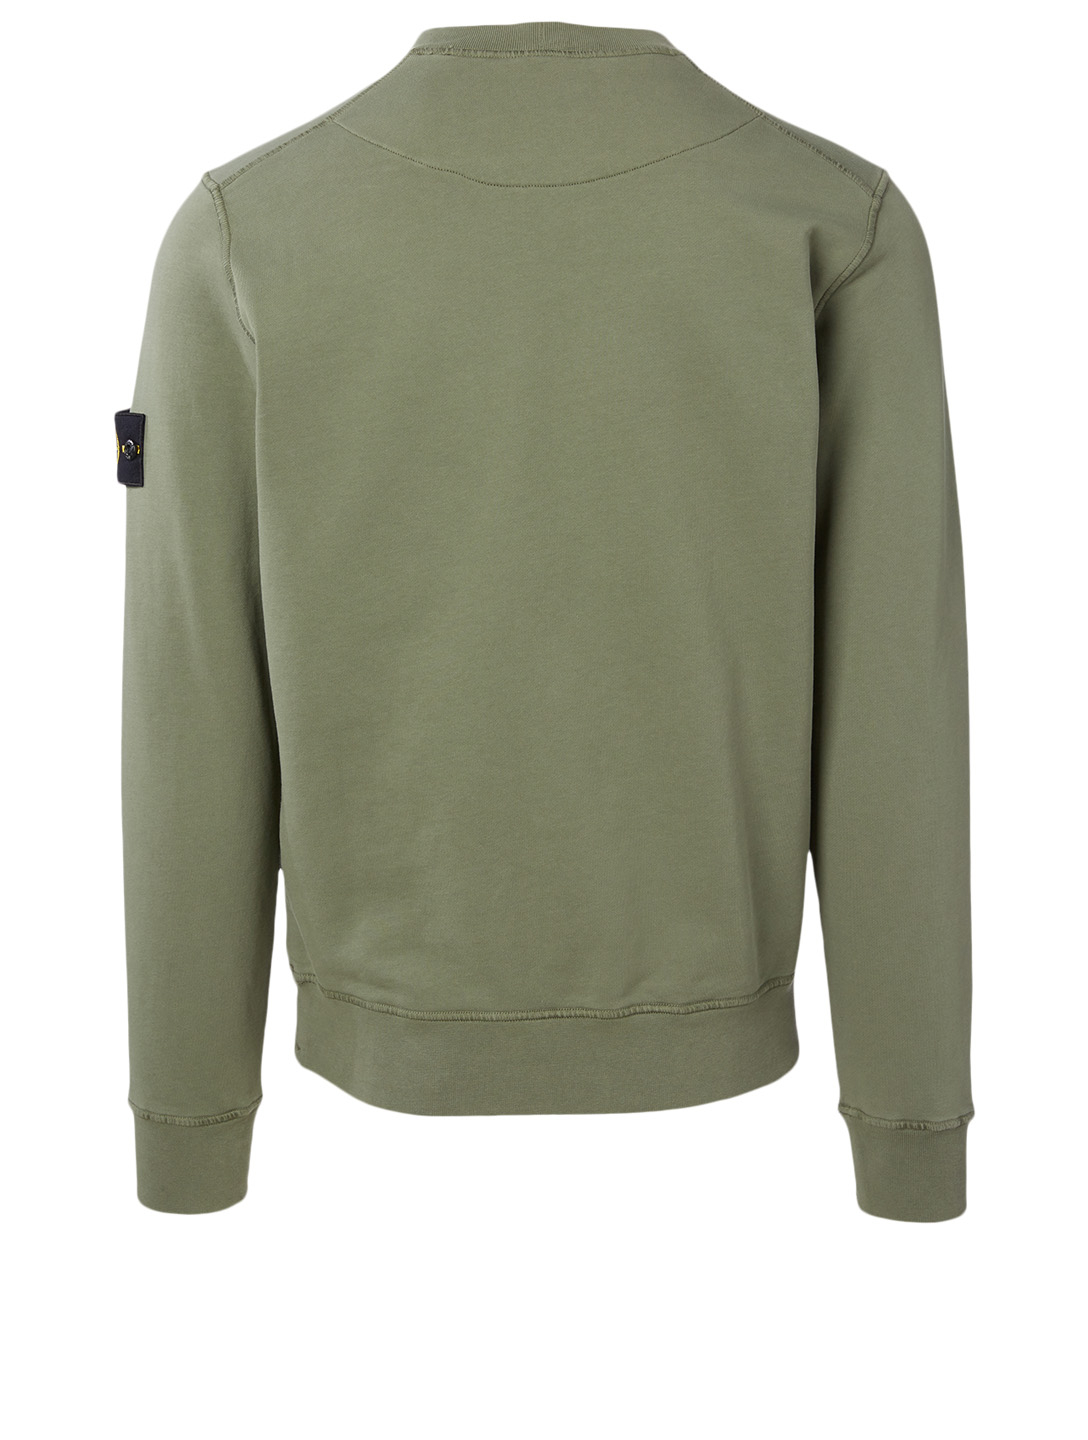 STONE ISLAND Cotton Sweatshirt Men's Green